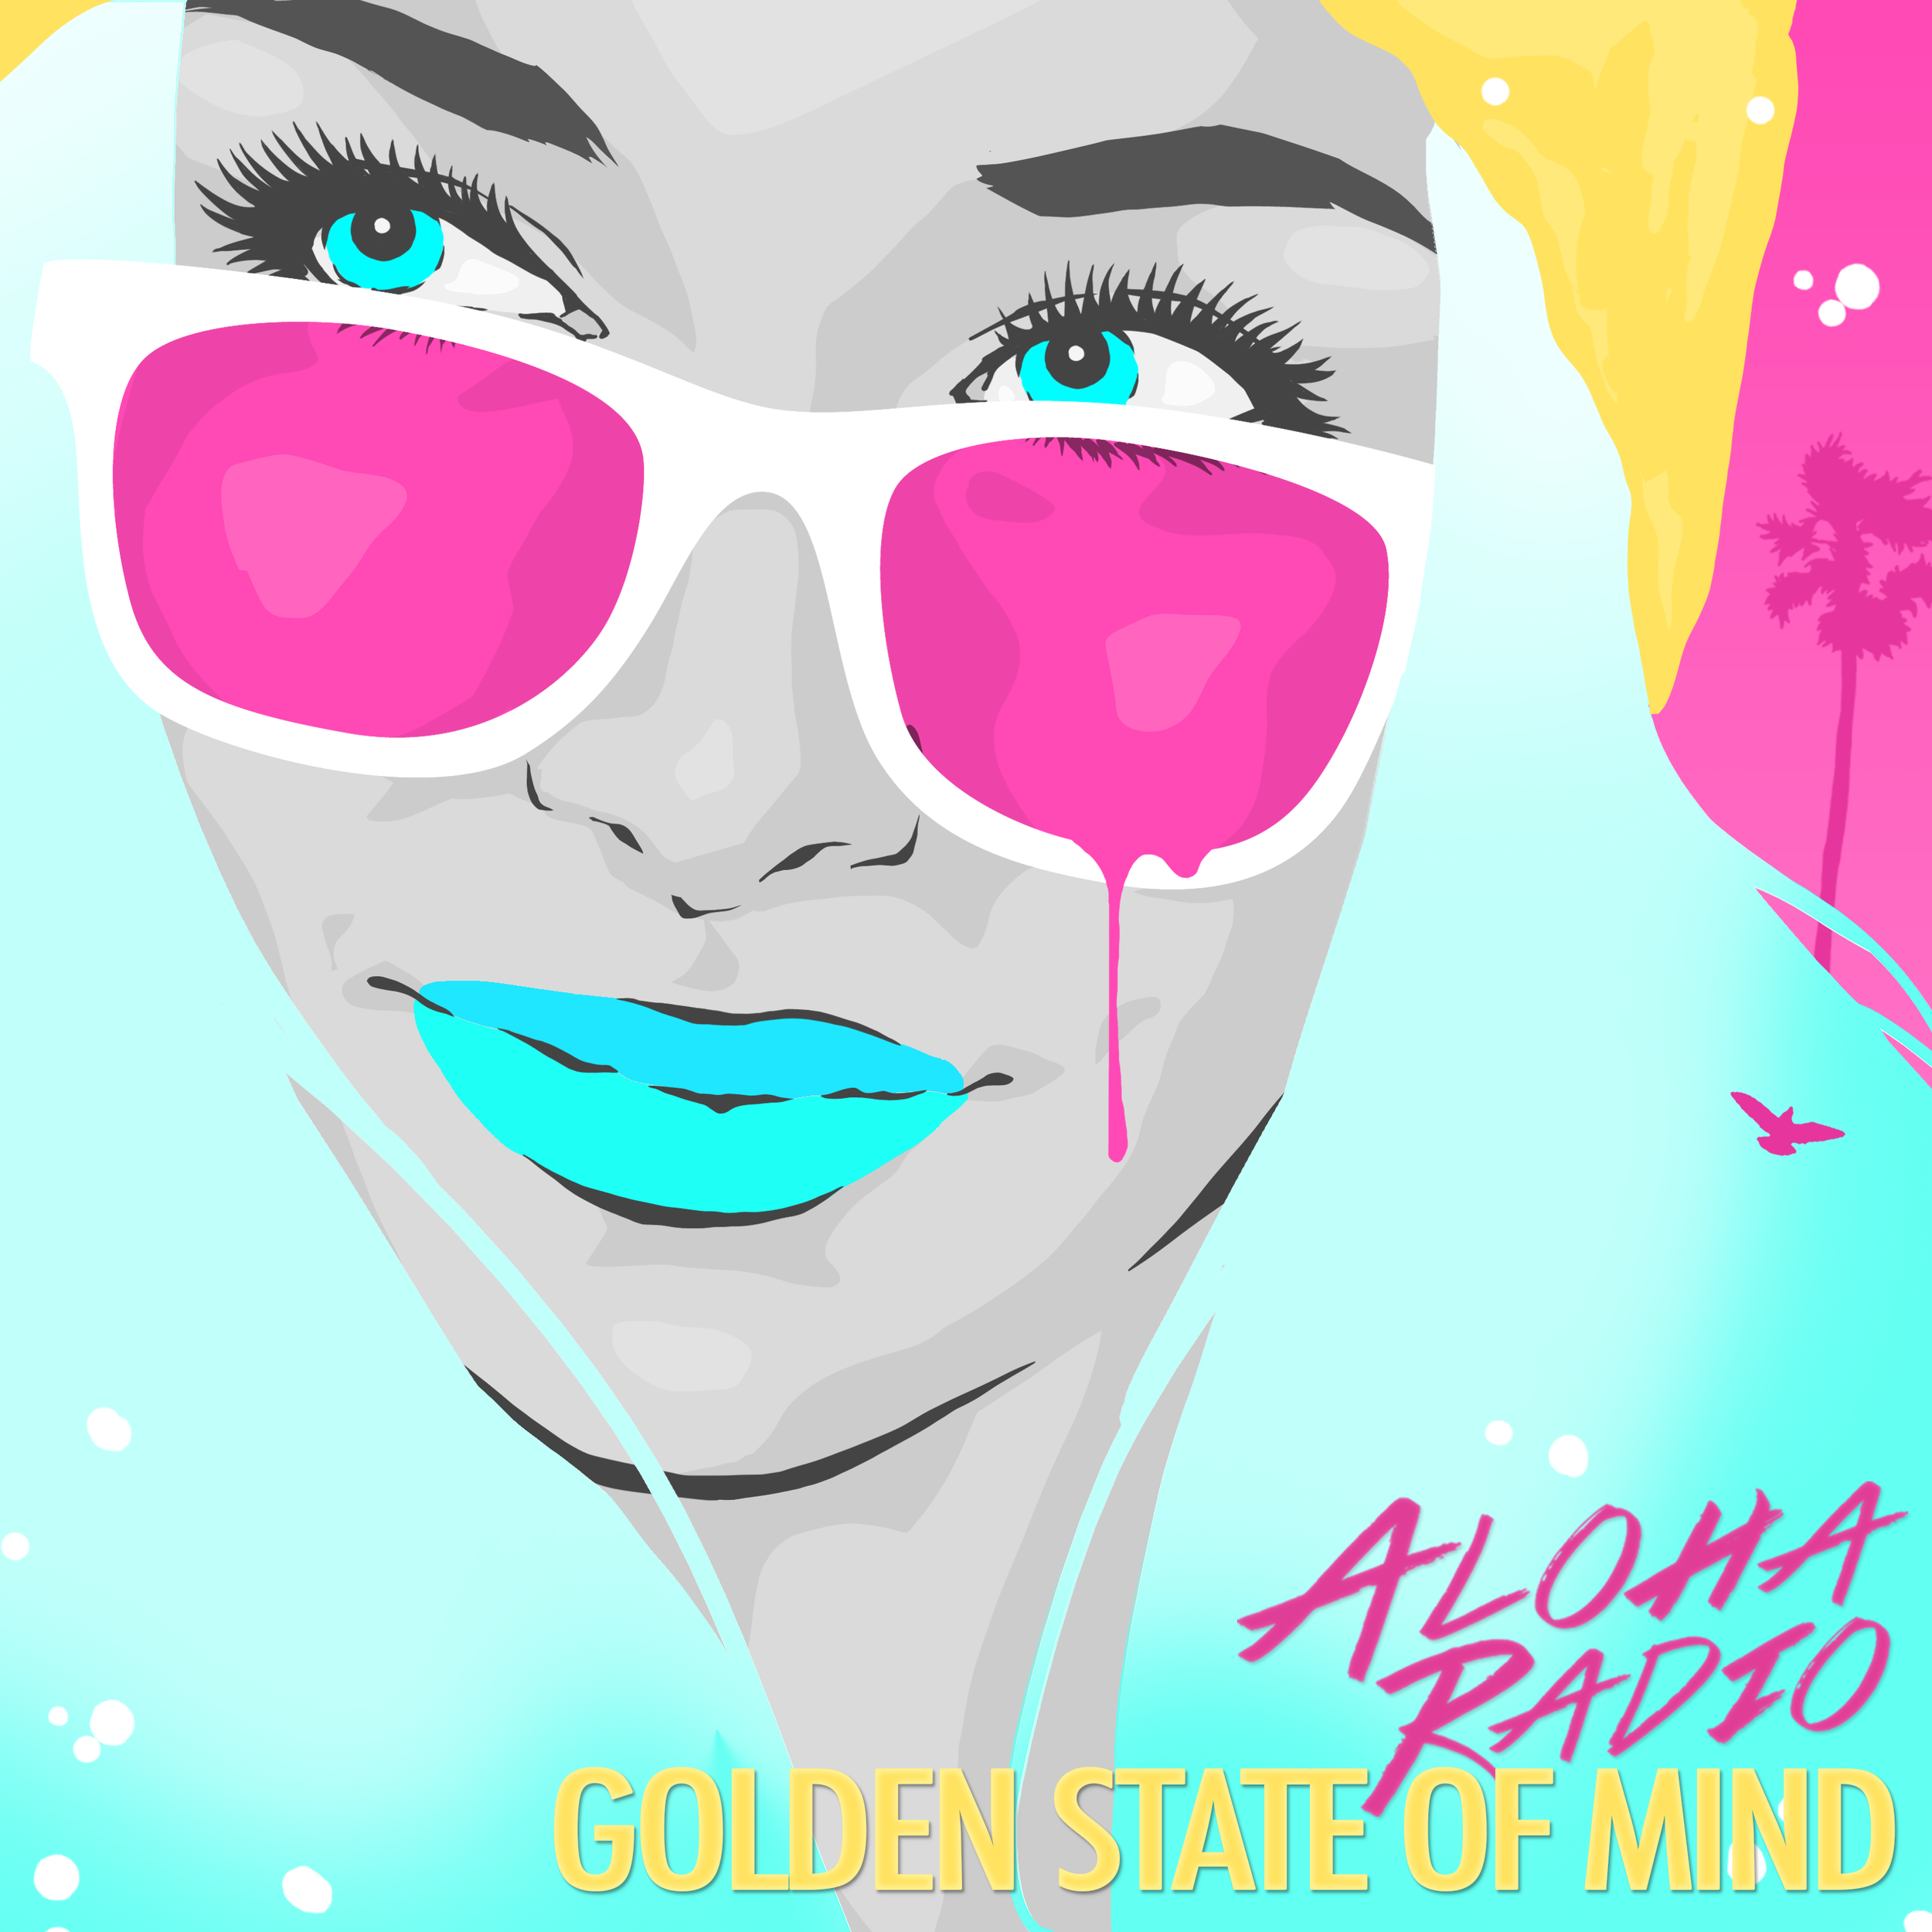 Aloha Radio's New Album 'Golden State of Mind' will be released Friday, June 23rd!   Artwork by James Haunt